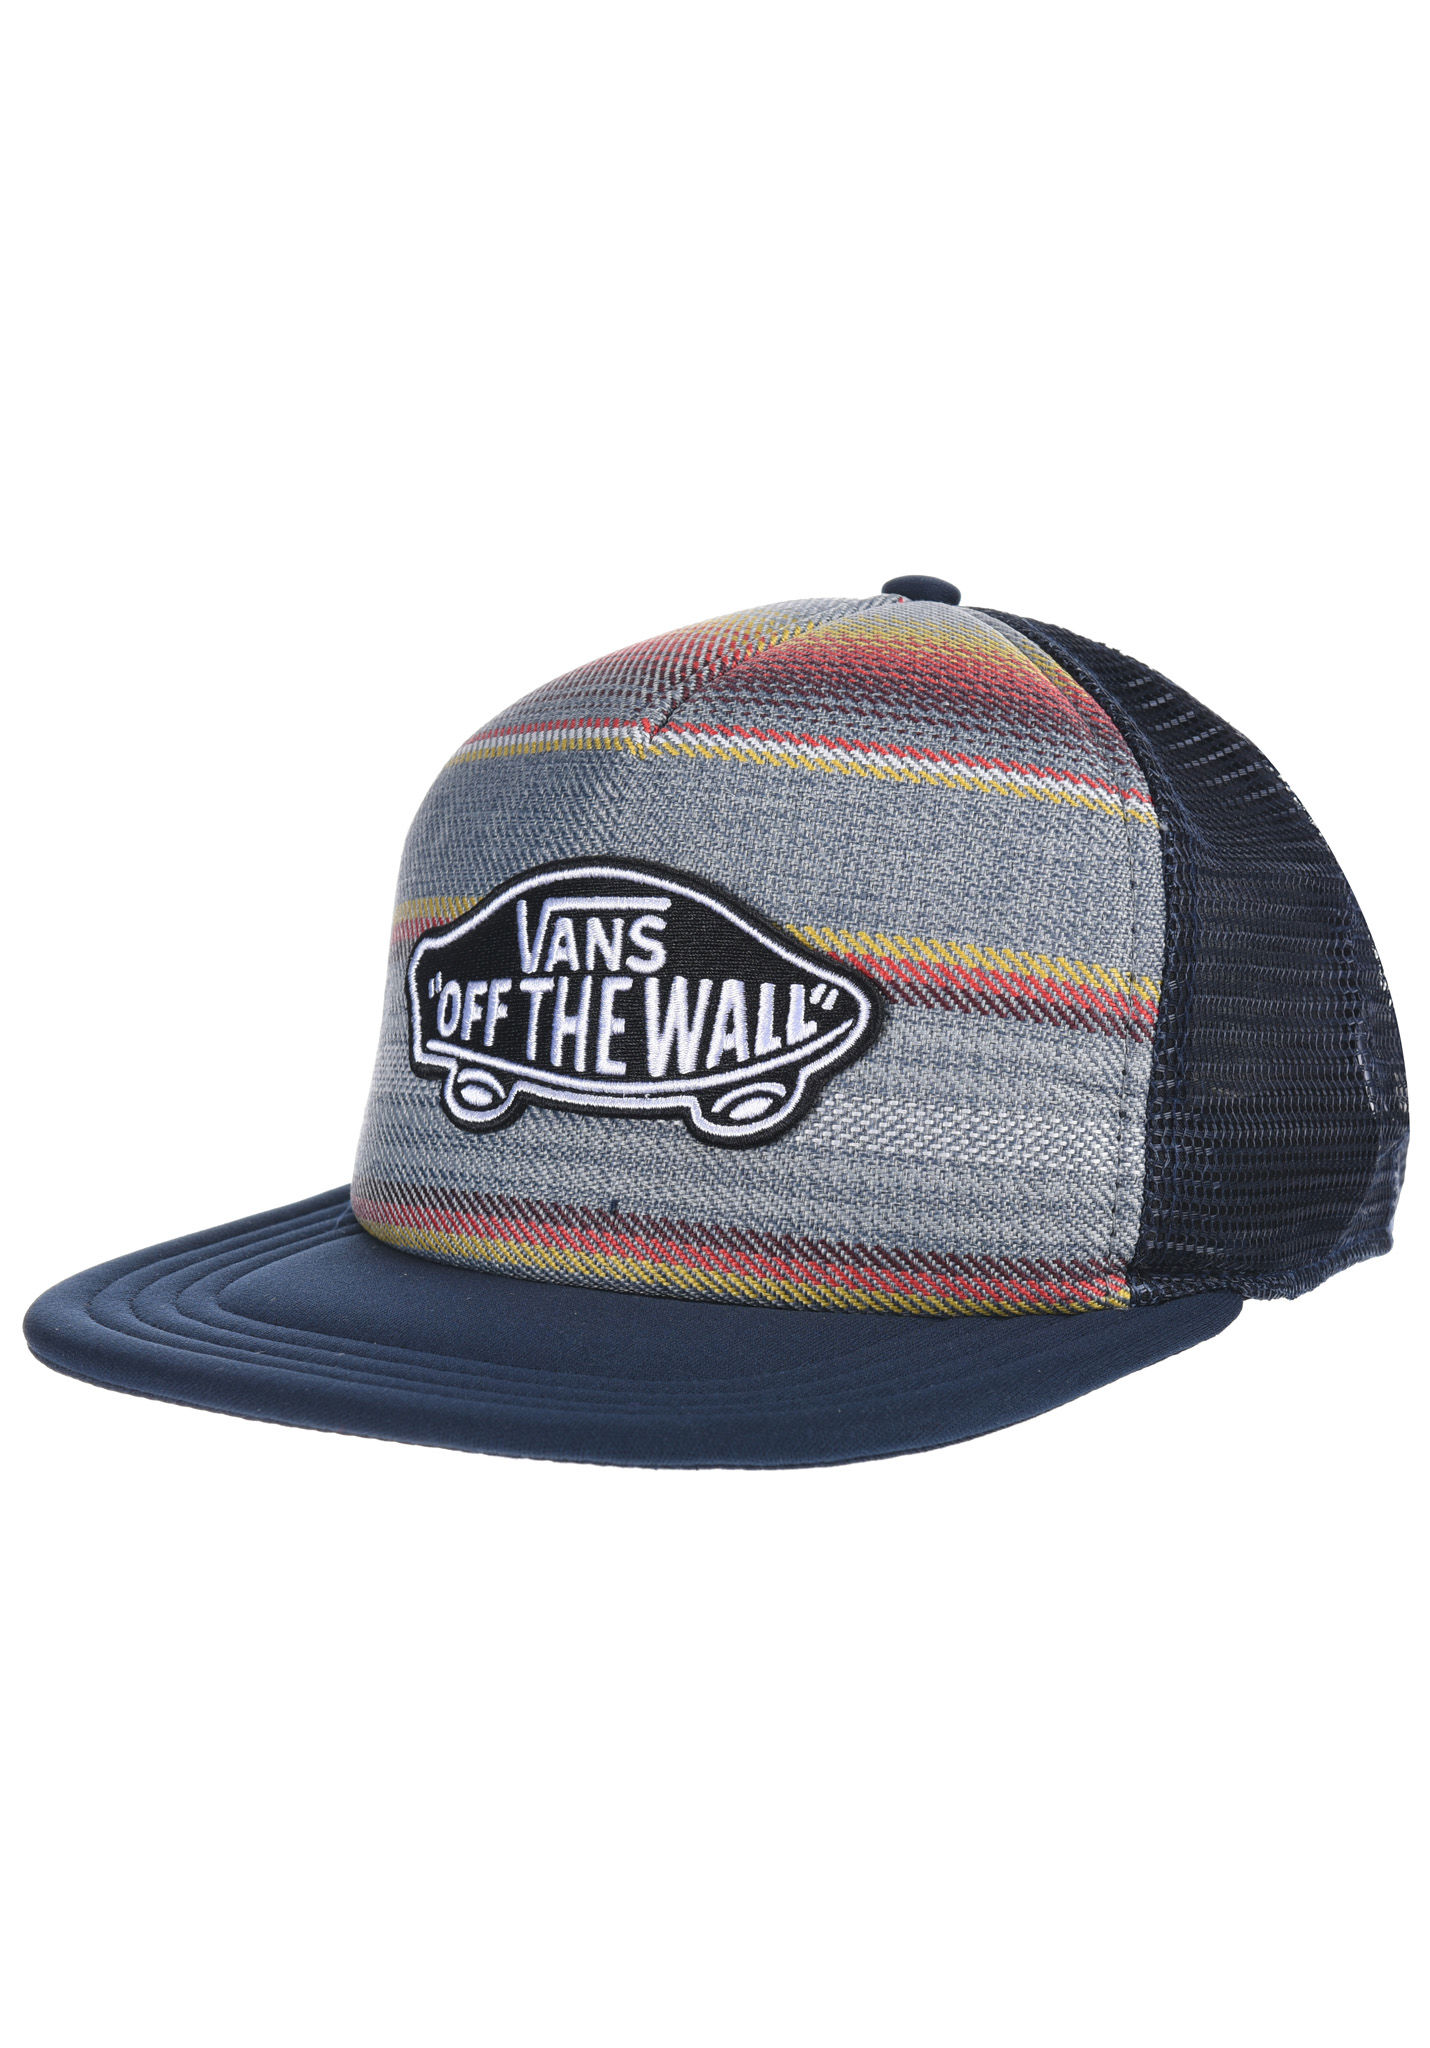 Vans Classic Patch Plus - Berretto da baseball per Uomo - Blu - Planet  Sports f3bedcd39faa